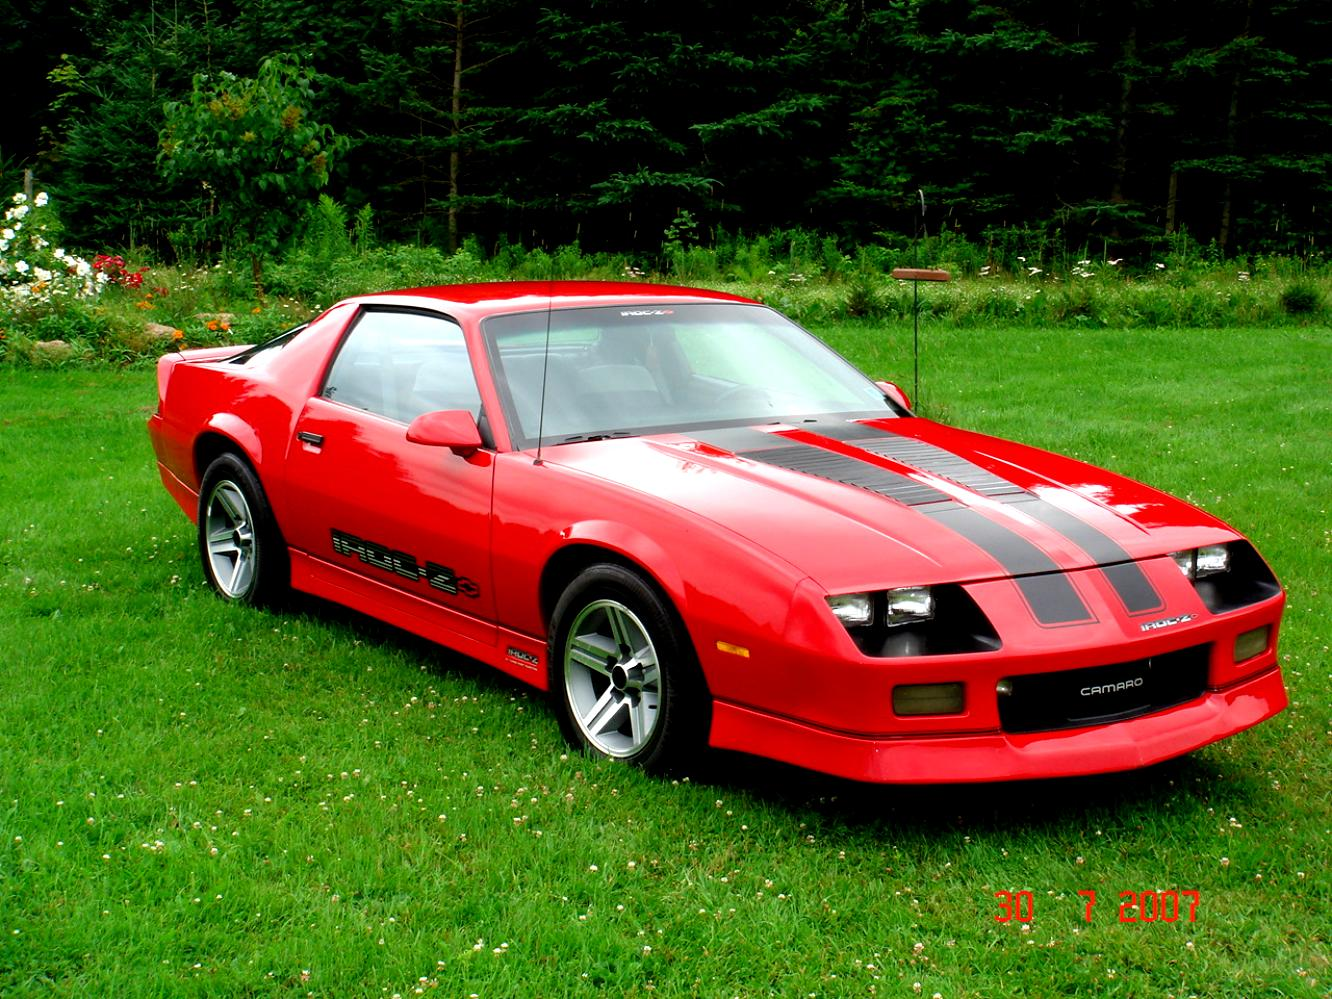 Chevrolet Camaro Iroc Z28 1984 On Motoimg Com